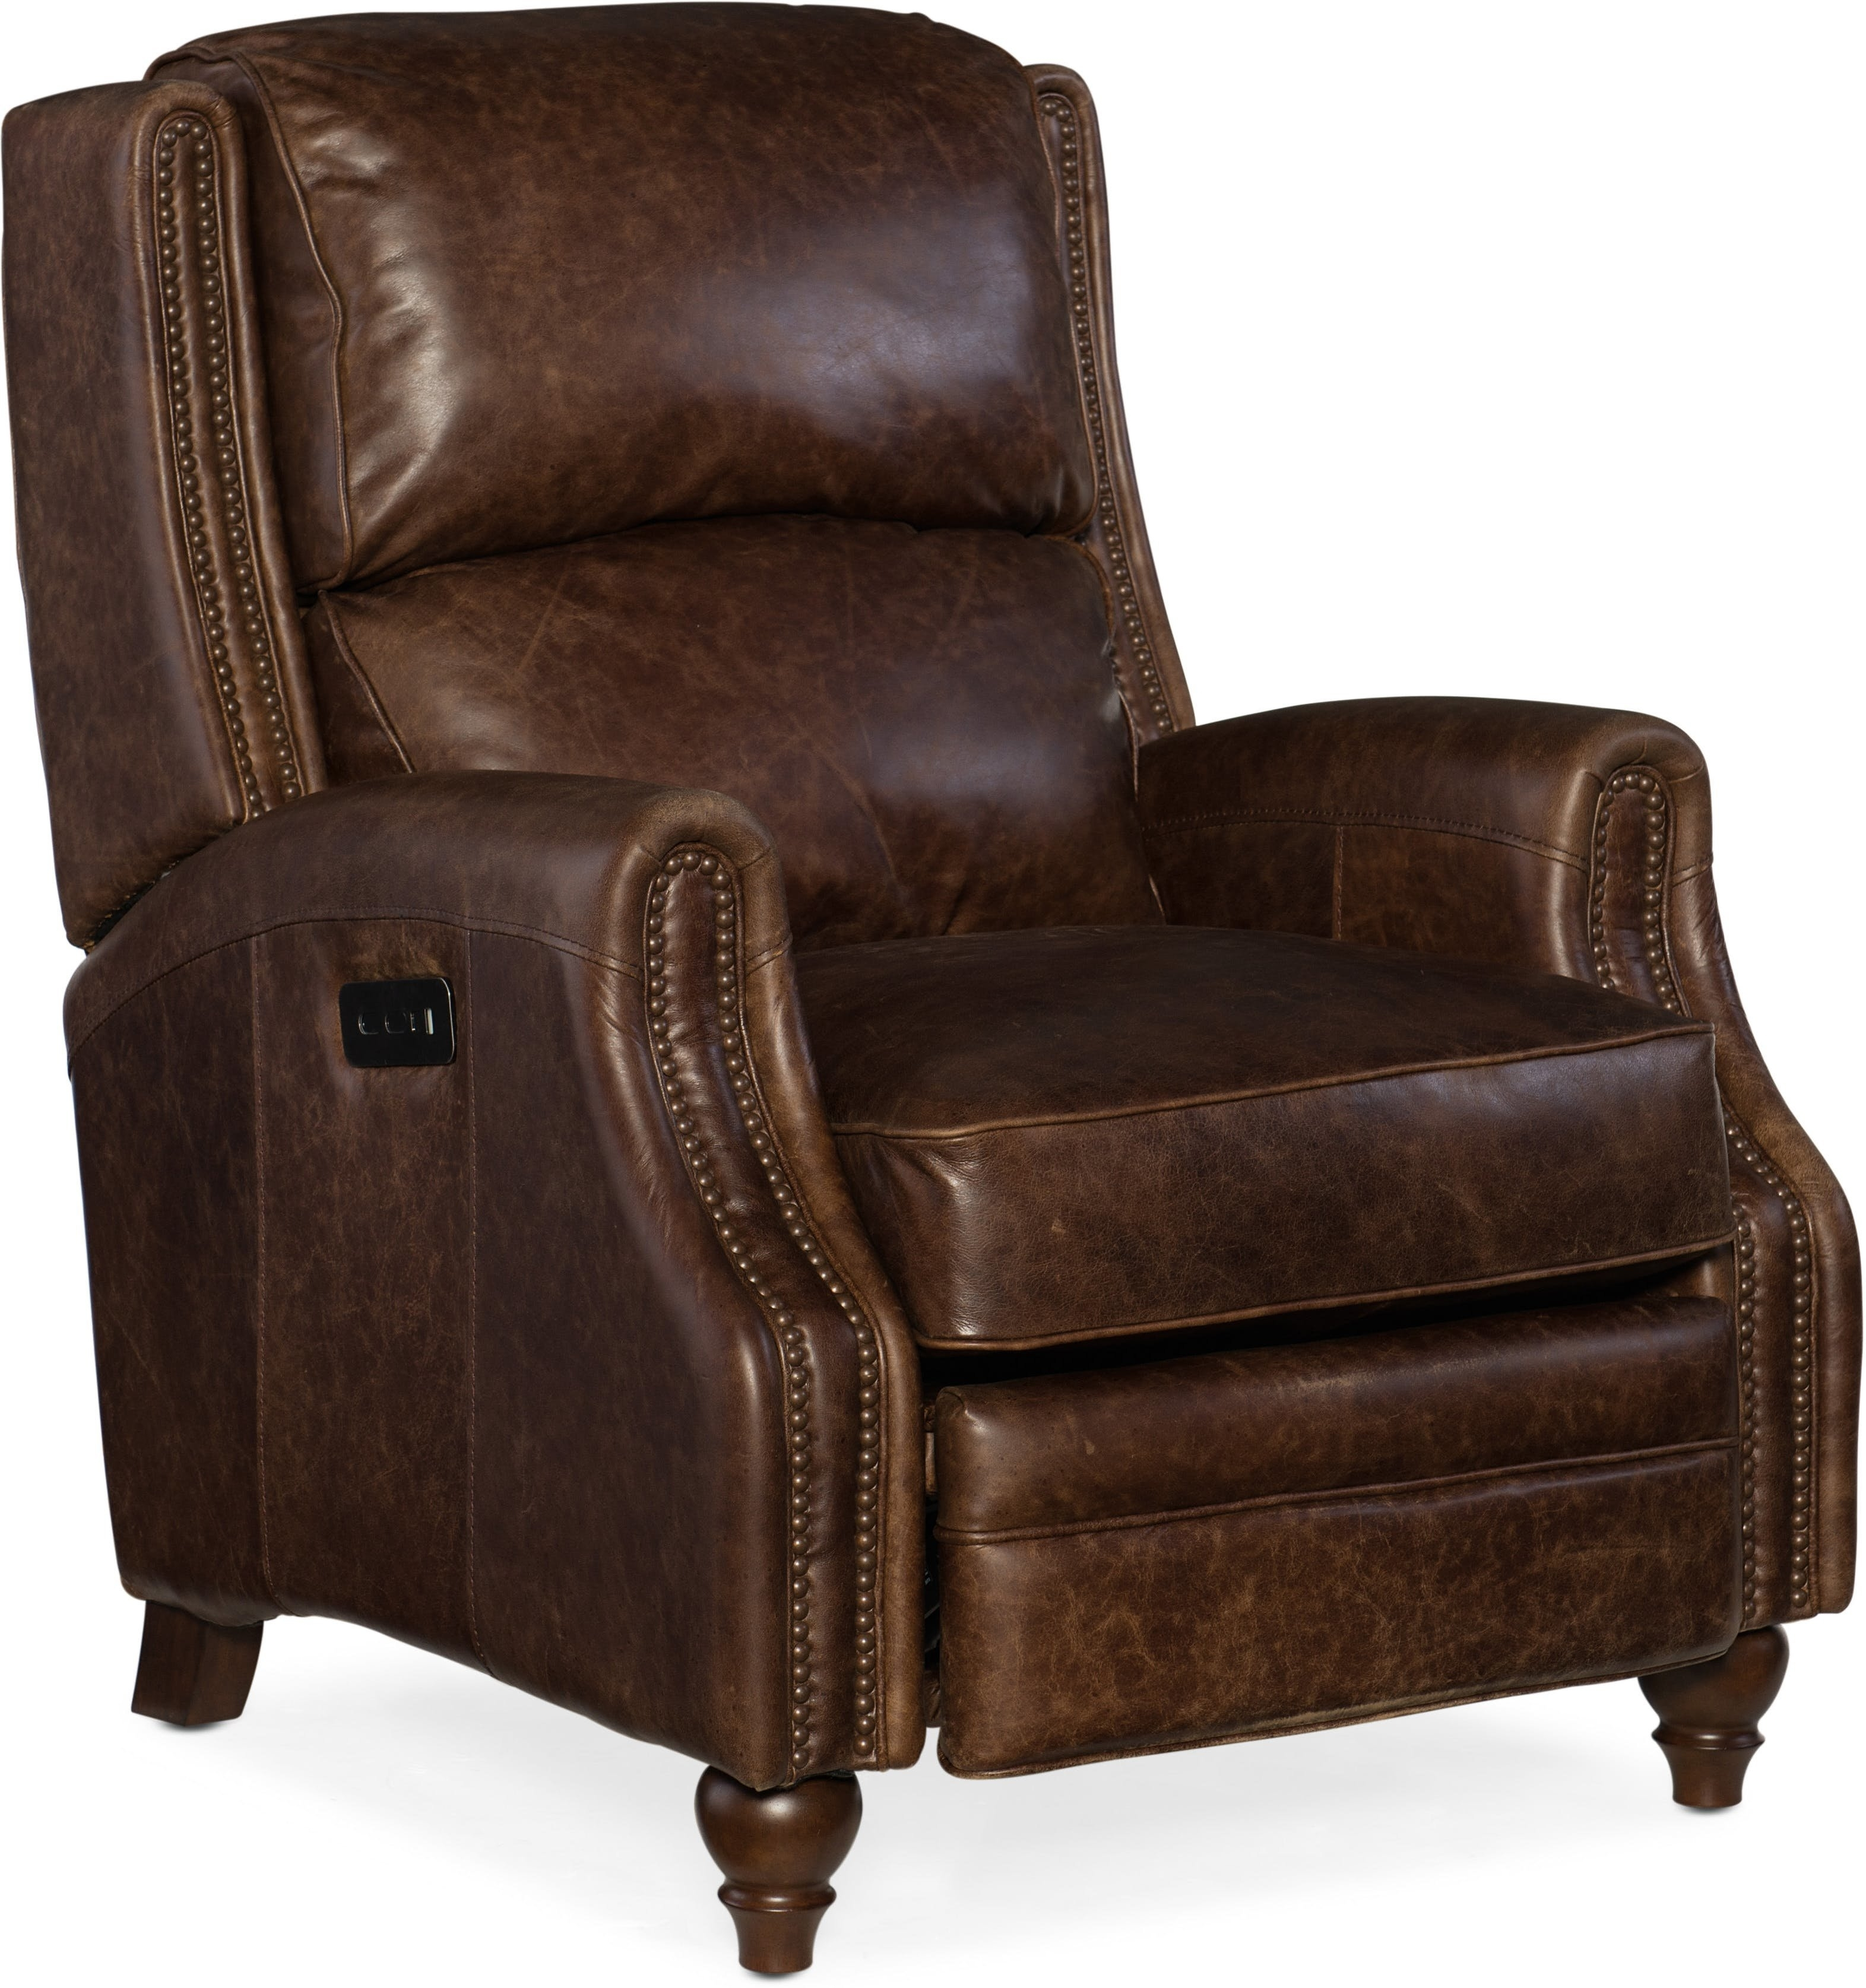 Hooker Furniture Brio Leather Power Recliner | Wayfair With Regard To Clyde Grey Leather 3 Piece Power Reclining Sectionals With Pwr Hdrst & Usb (View 15 of 25)